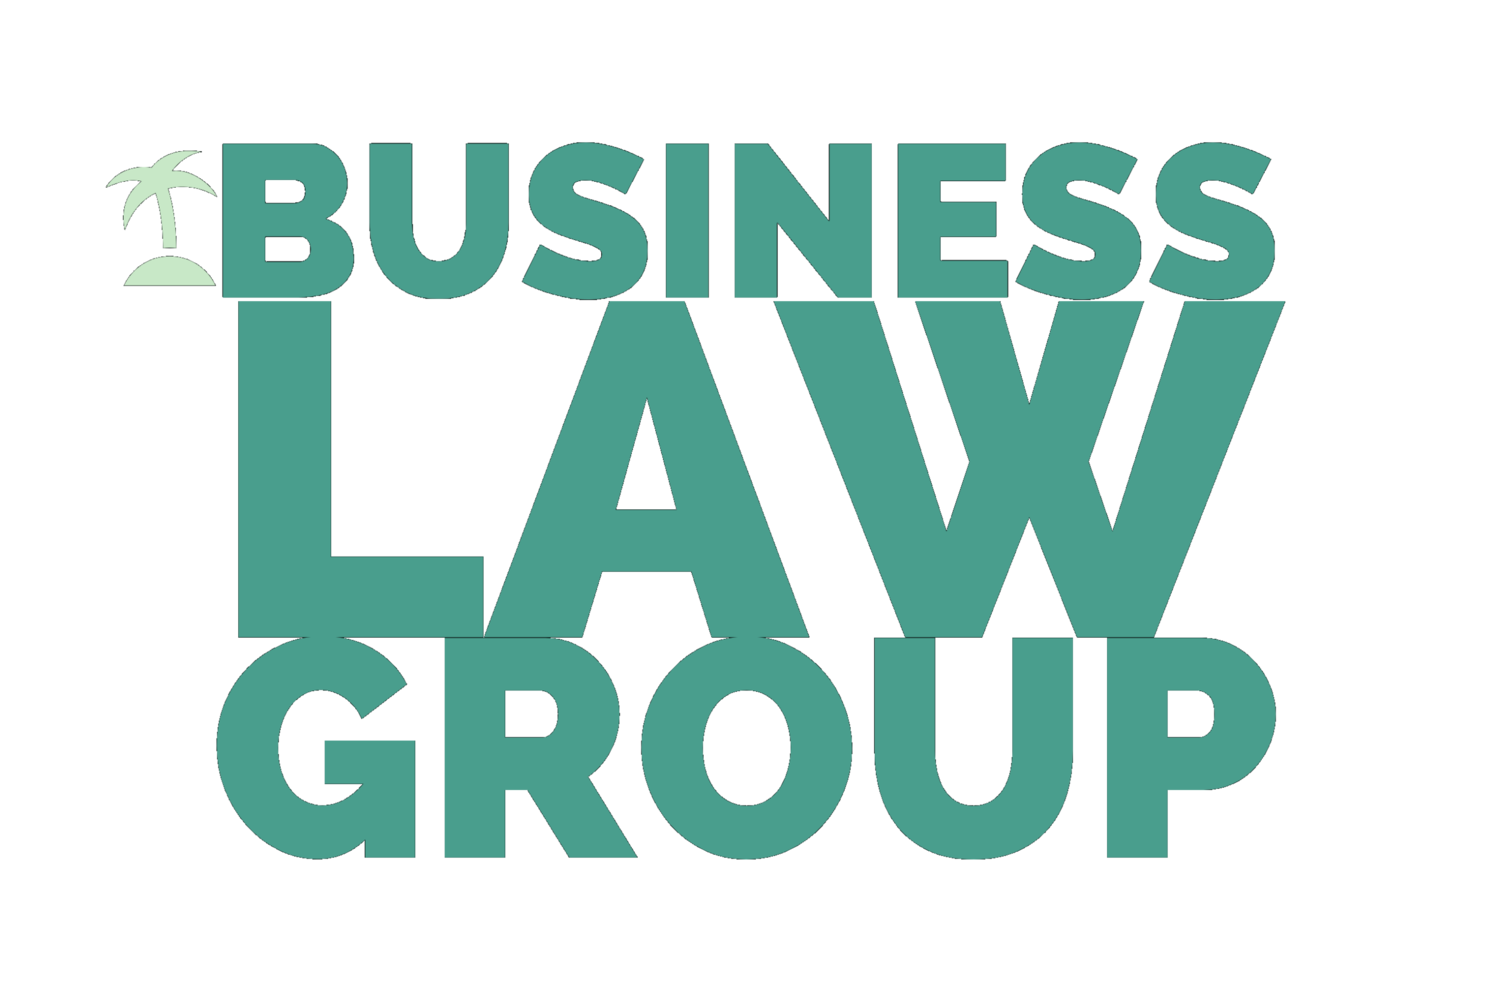 Business Law Group